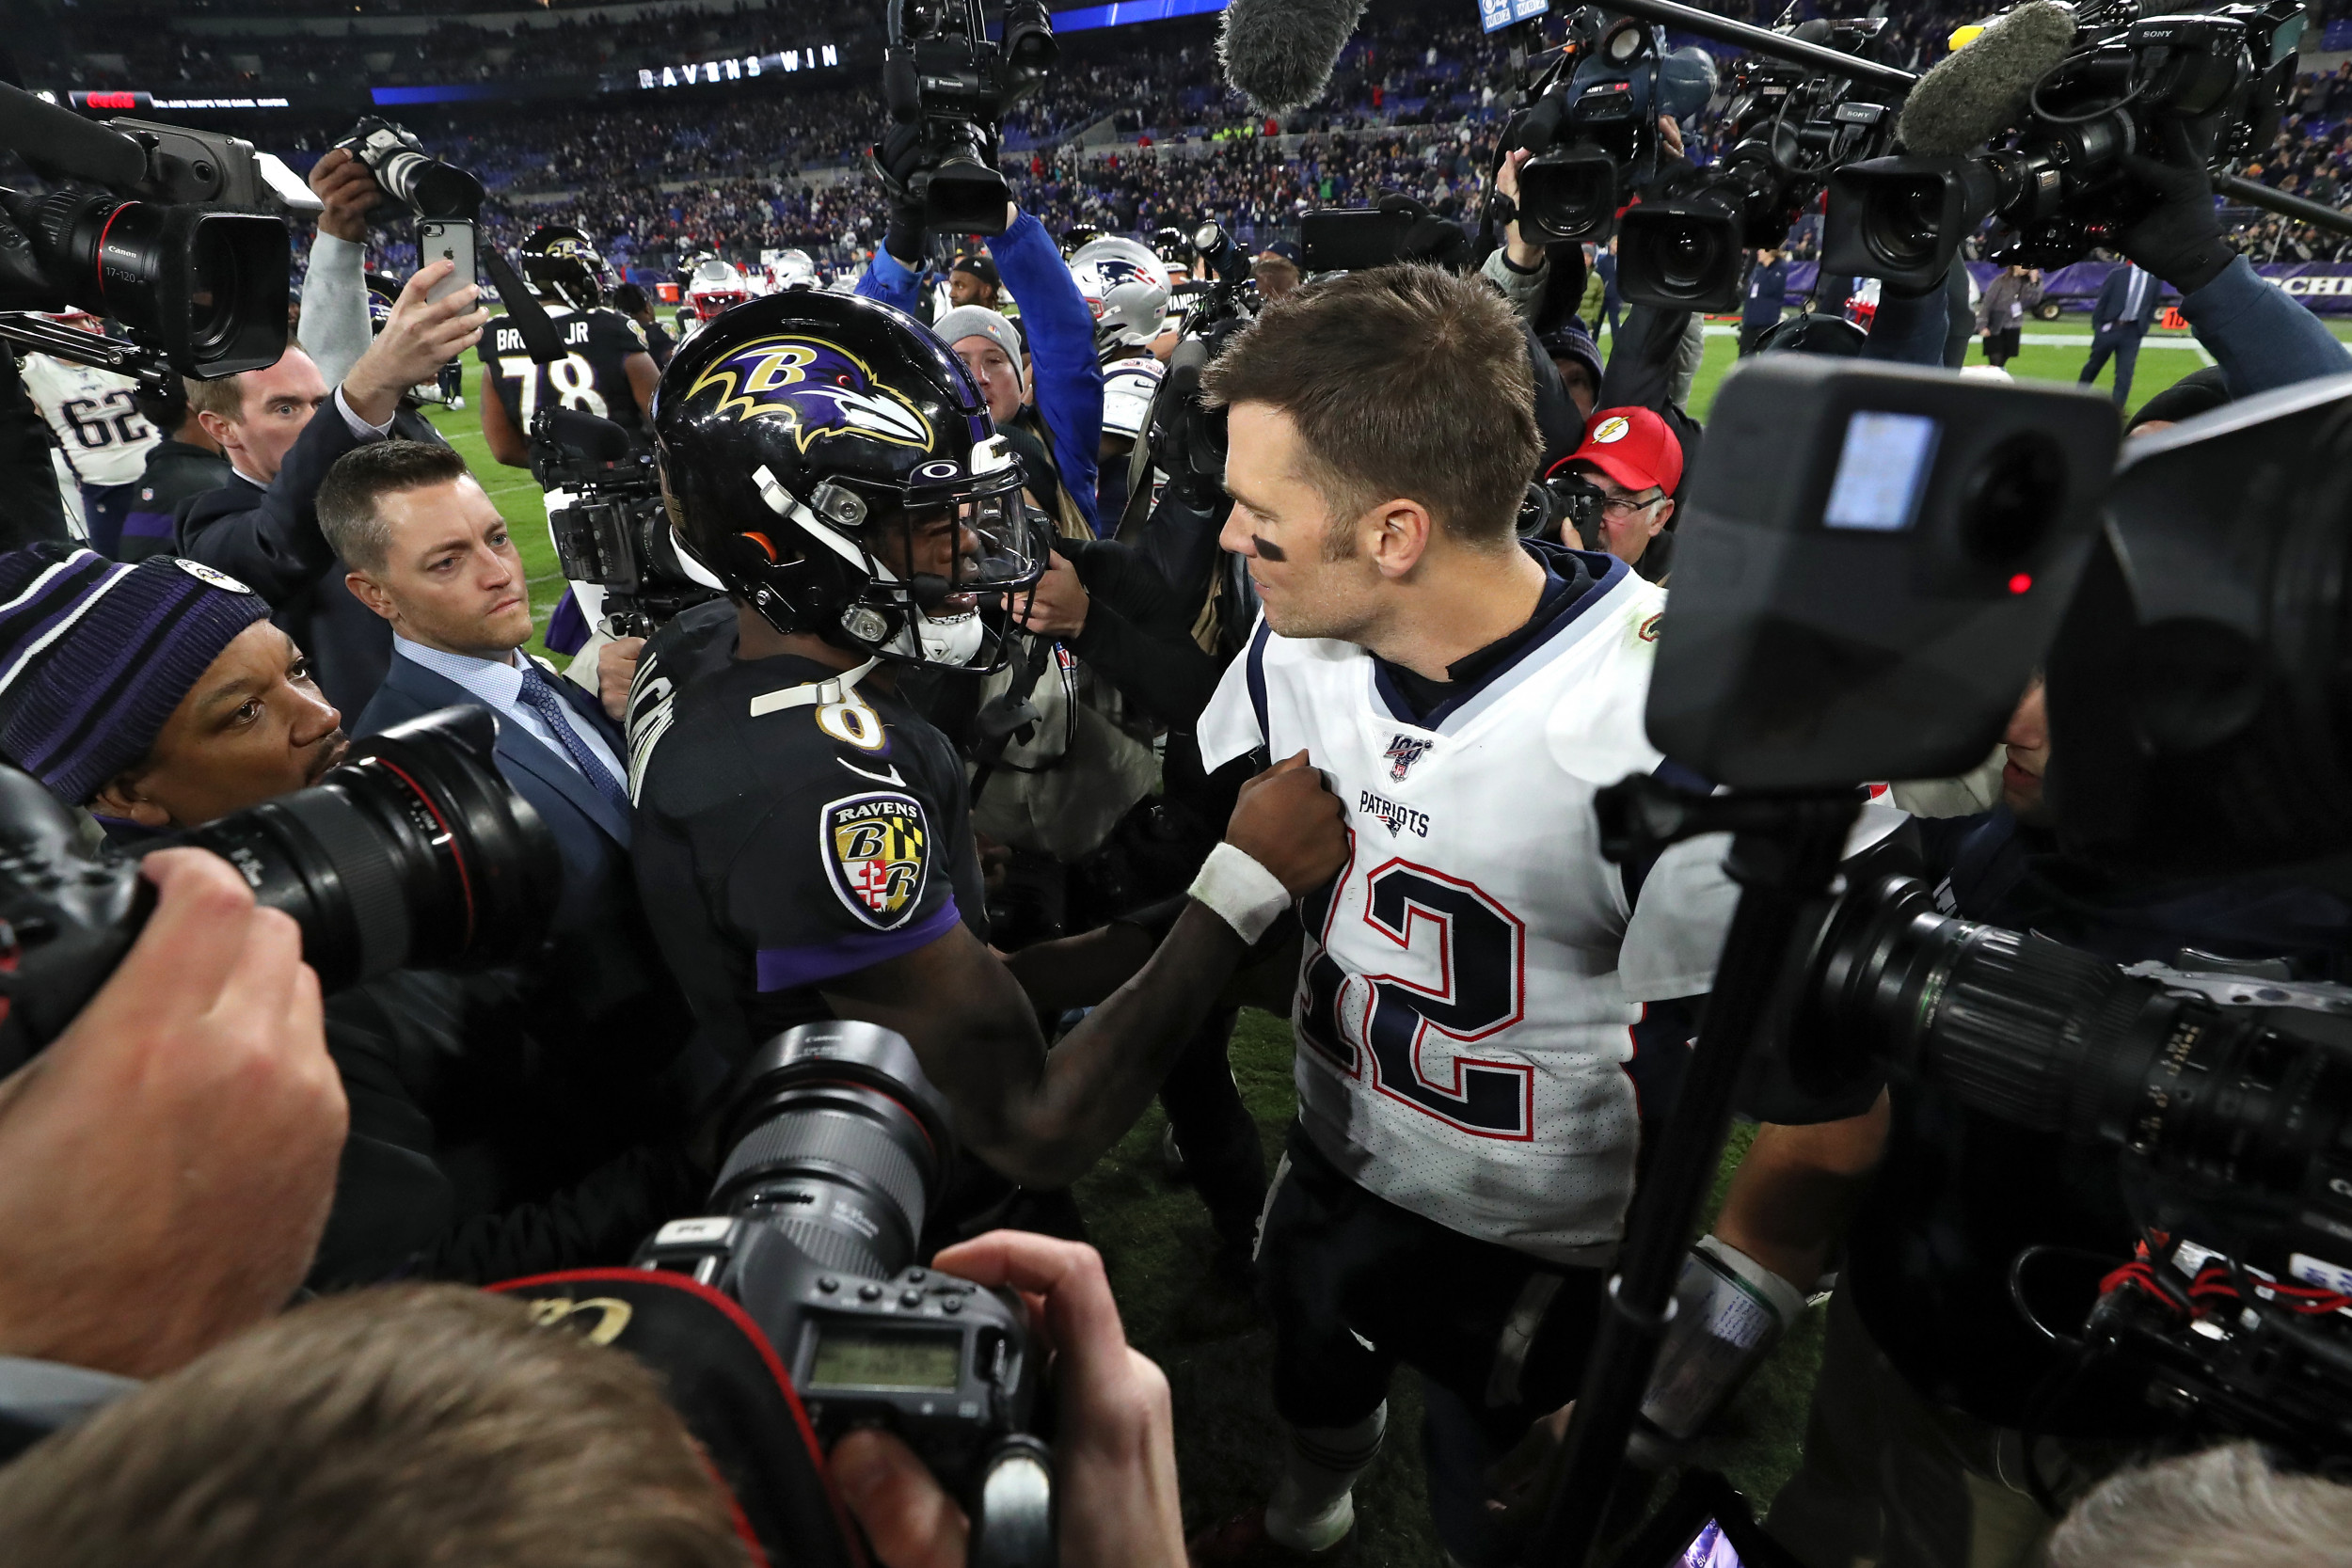 Super Bowl 2020 Home Team.Odds To Win Super Bowl 2020 Patriots And Ravens Joint